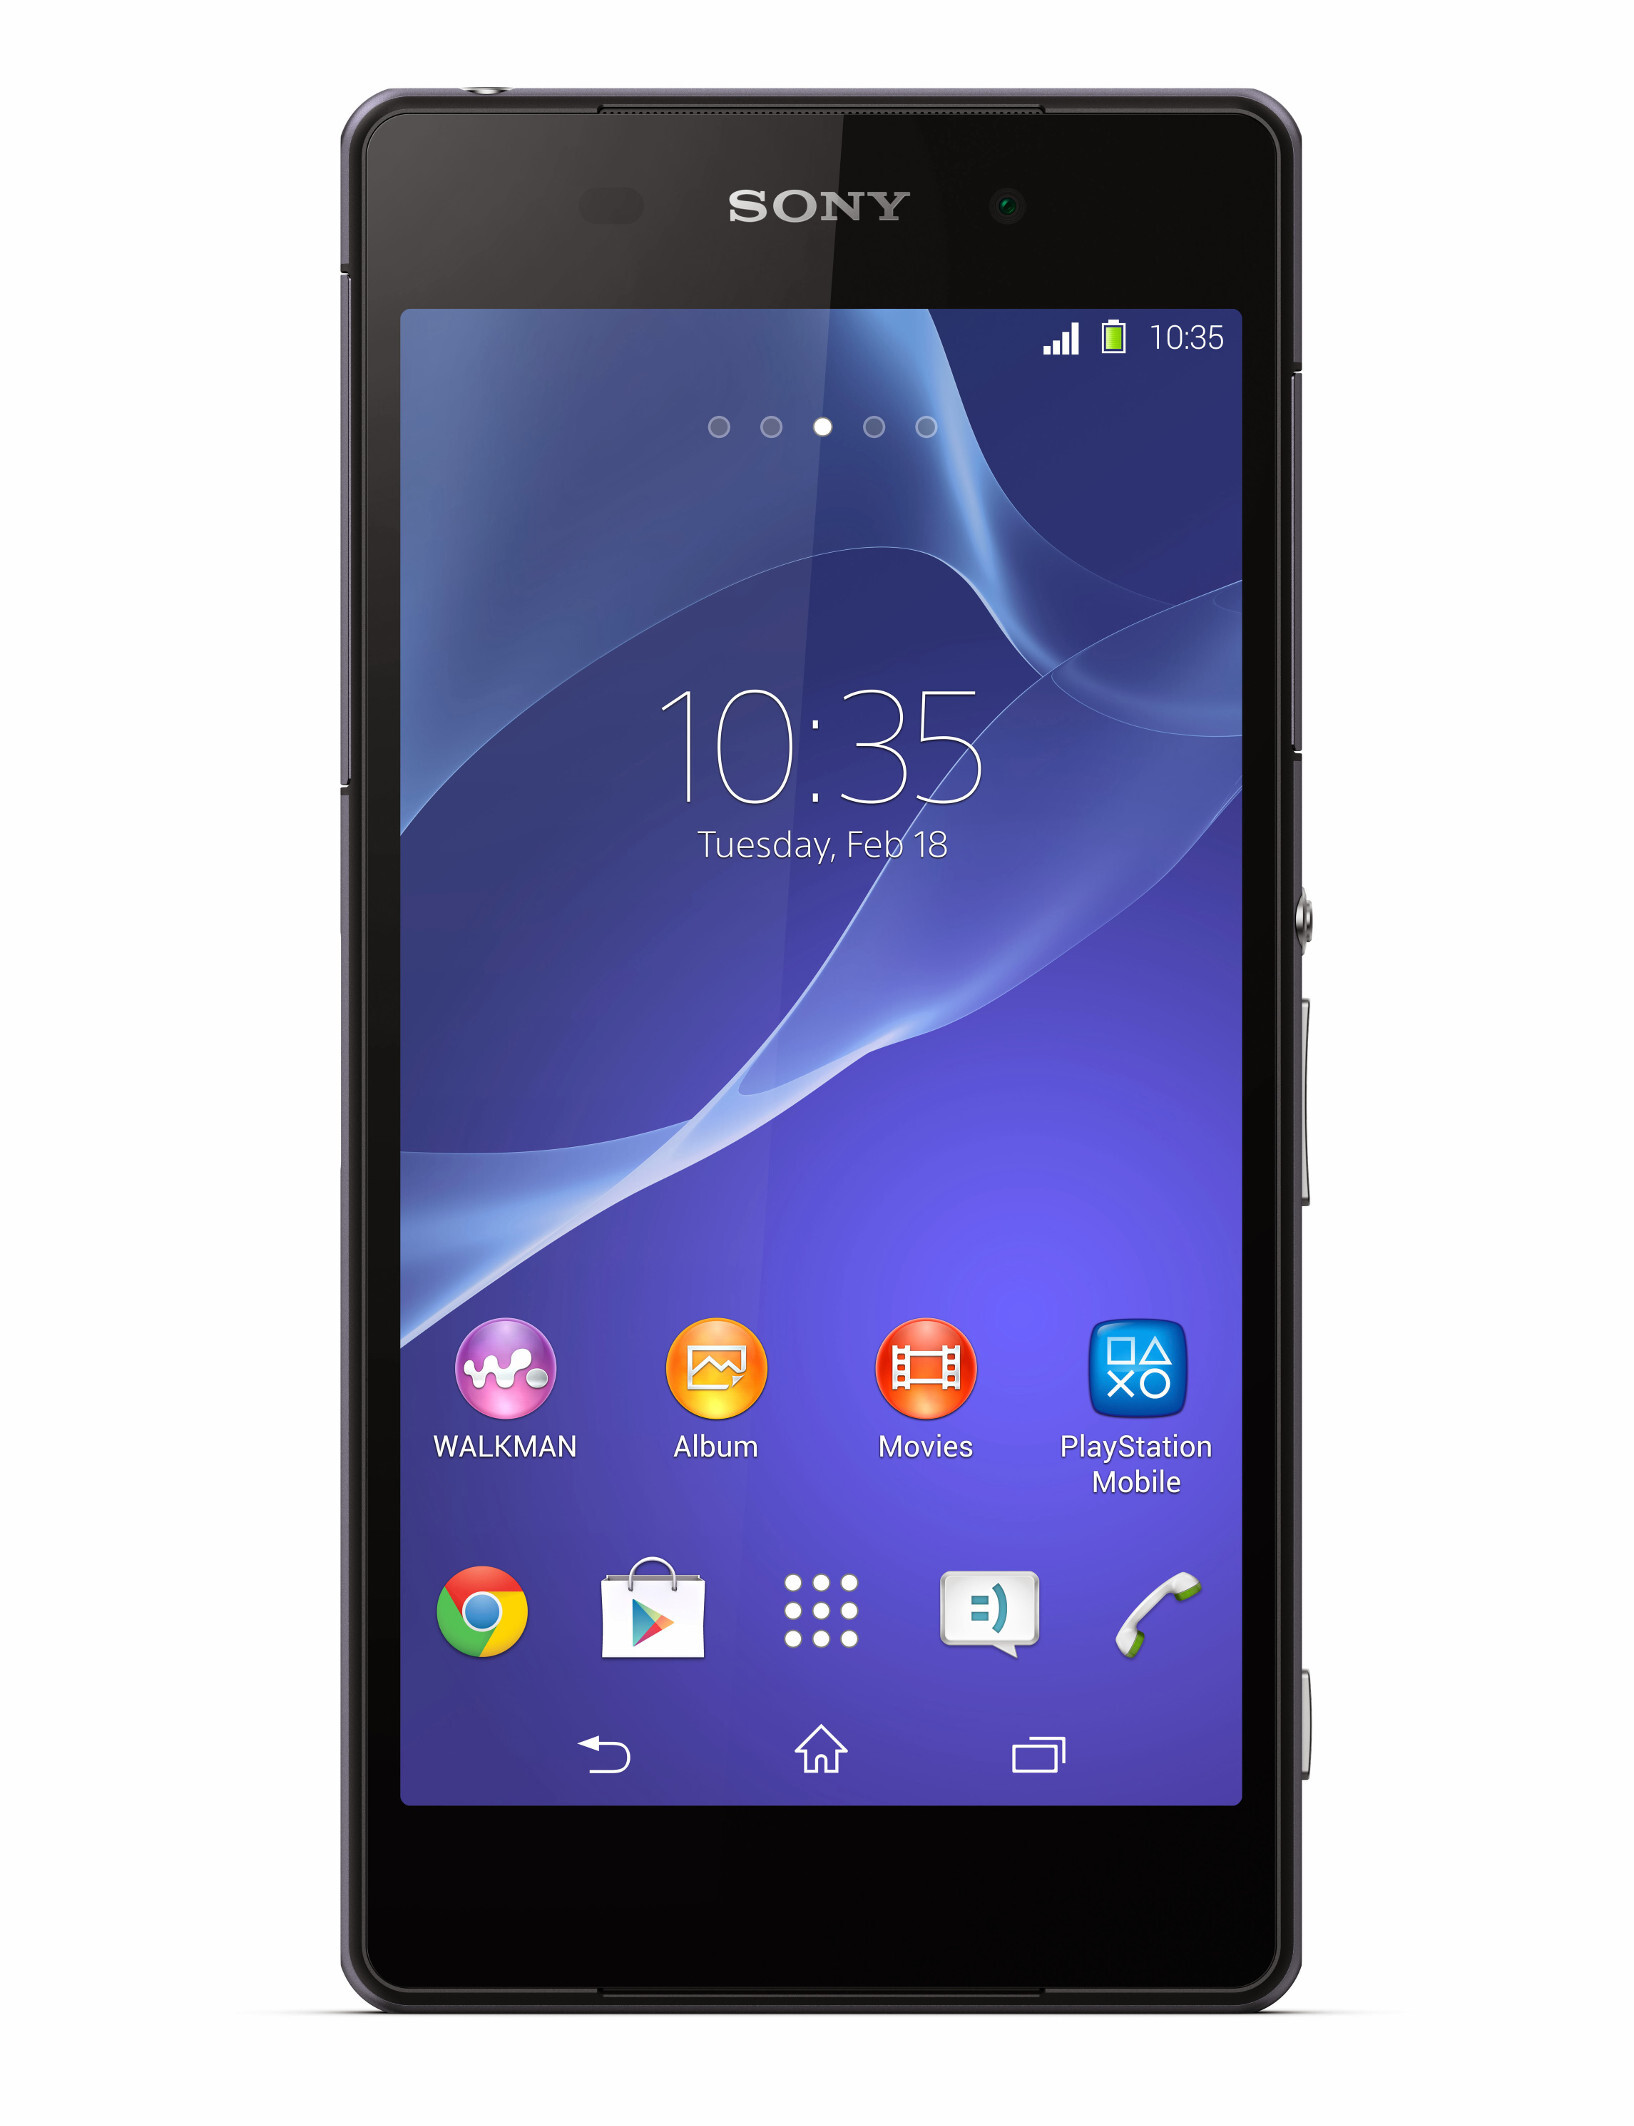 Camera Android Sony Phone sony xperia z2 gets another price cut in the us obviously because z2